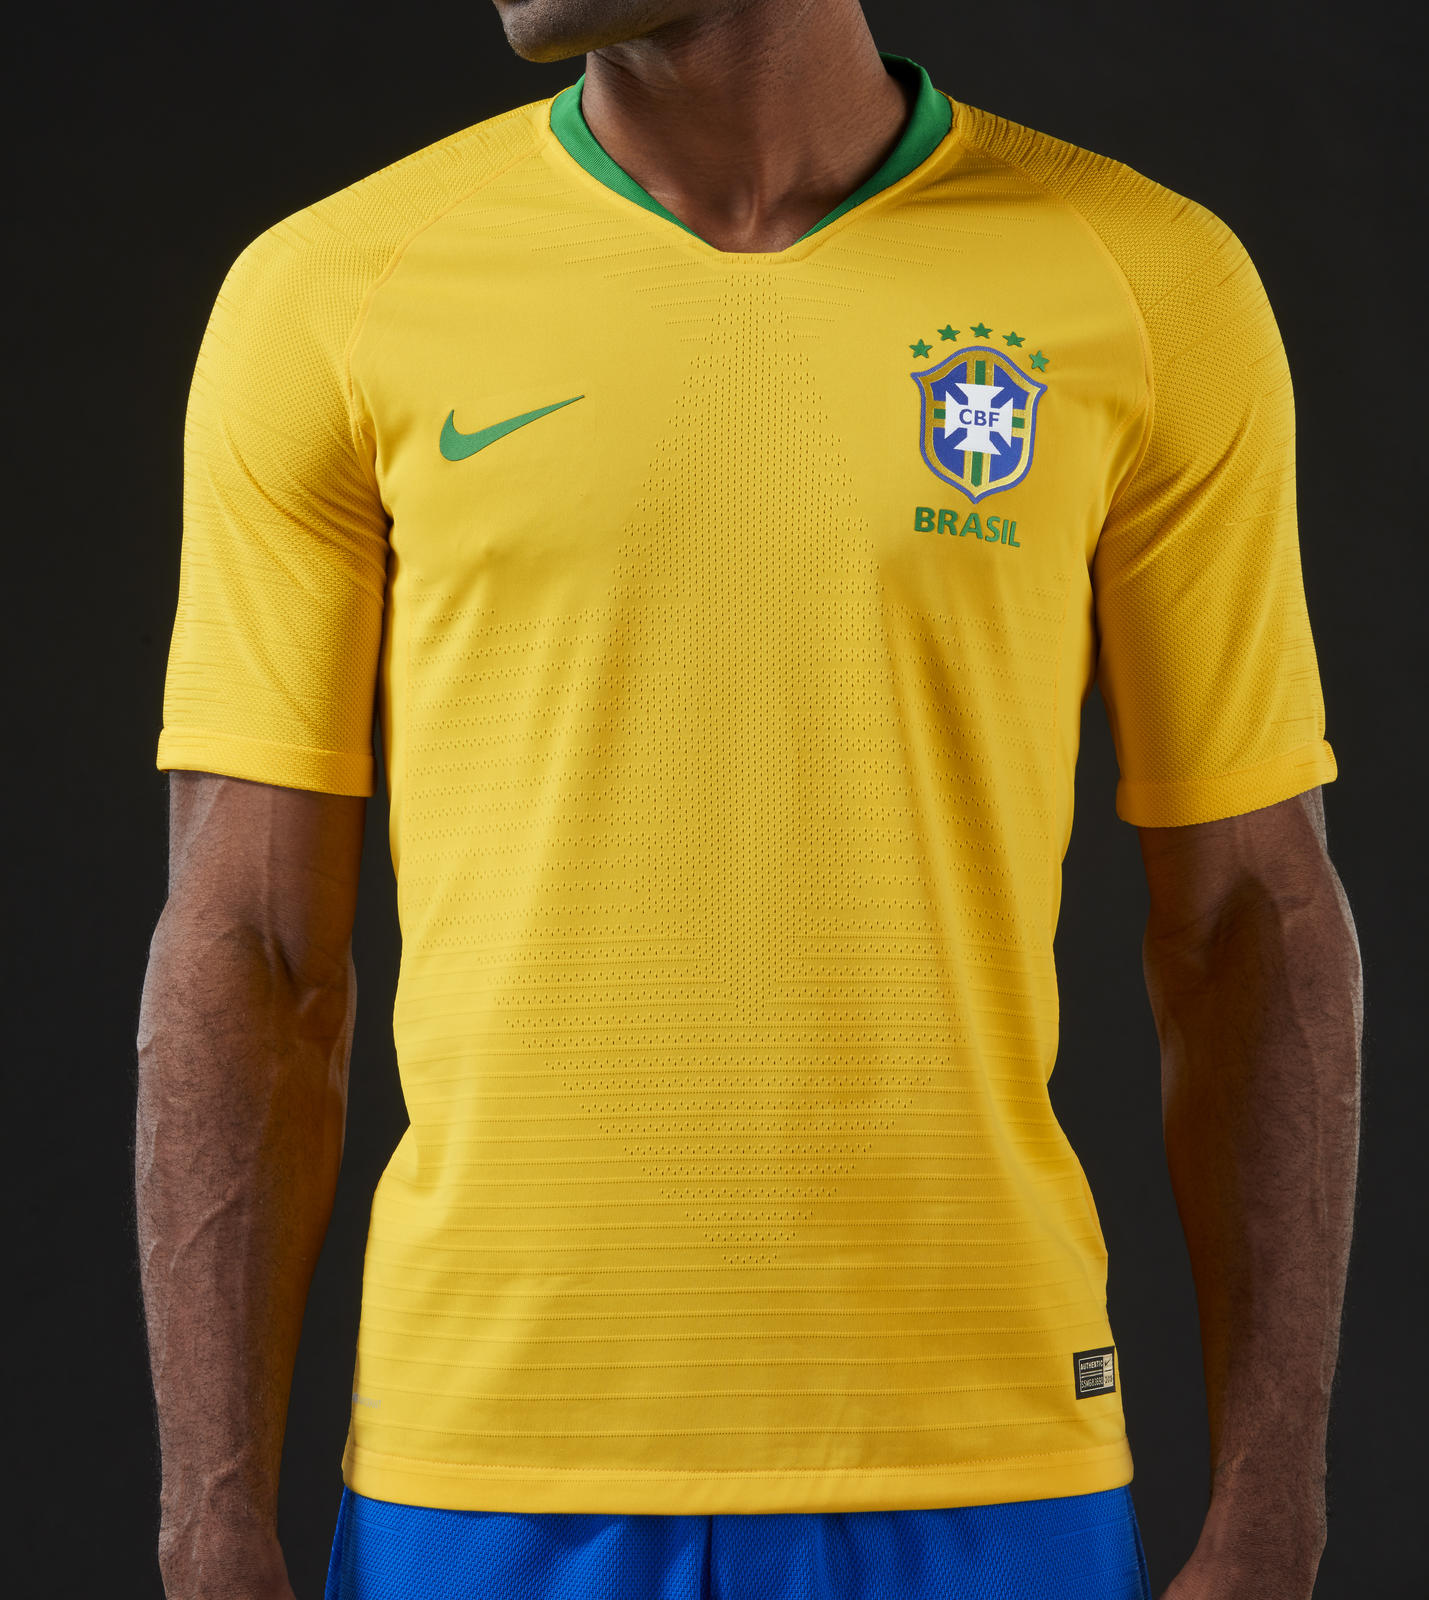 A Retrospective of Brasil's Yellow Jersey 6